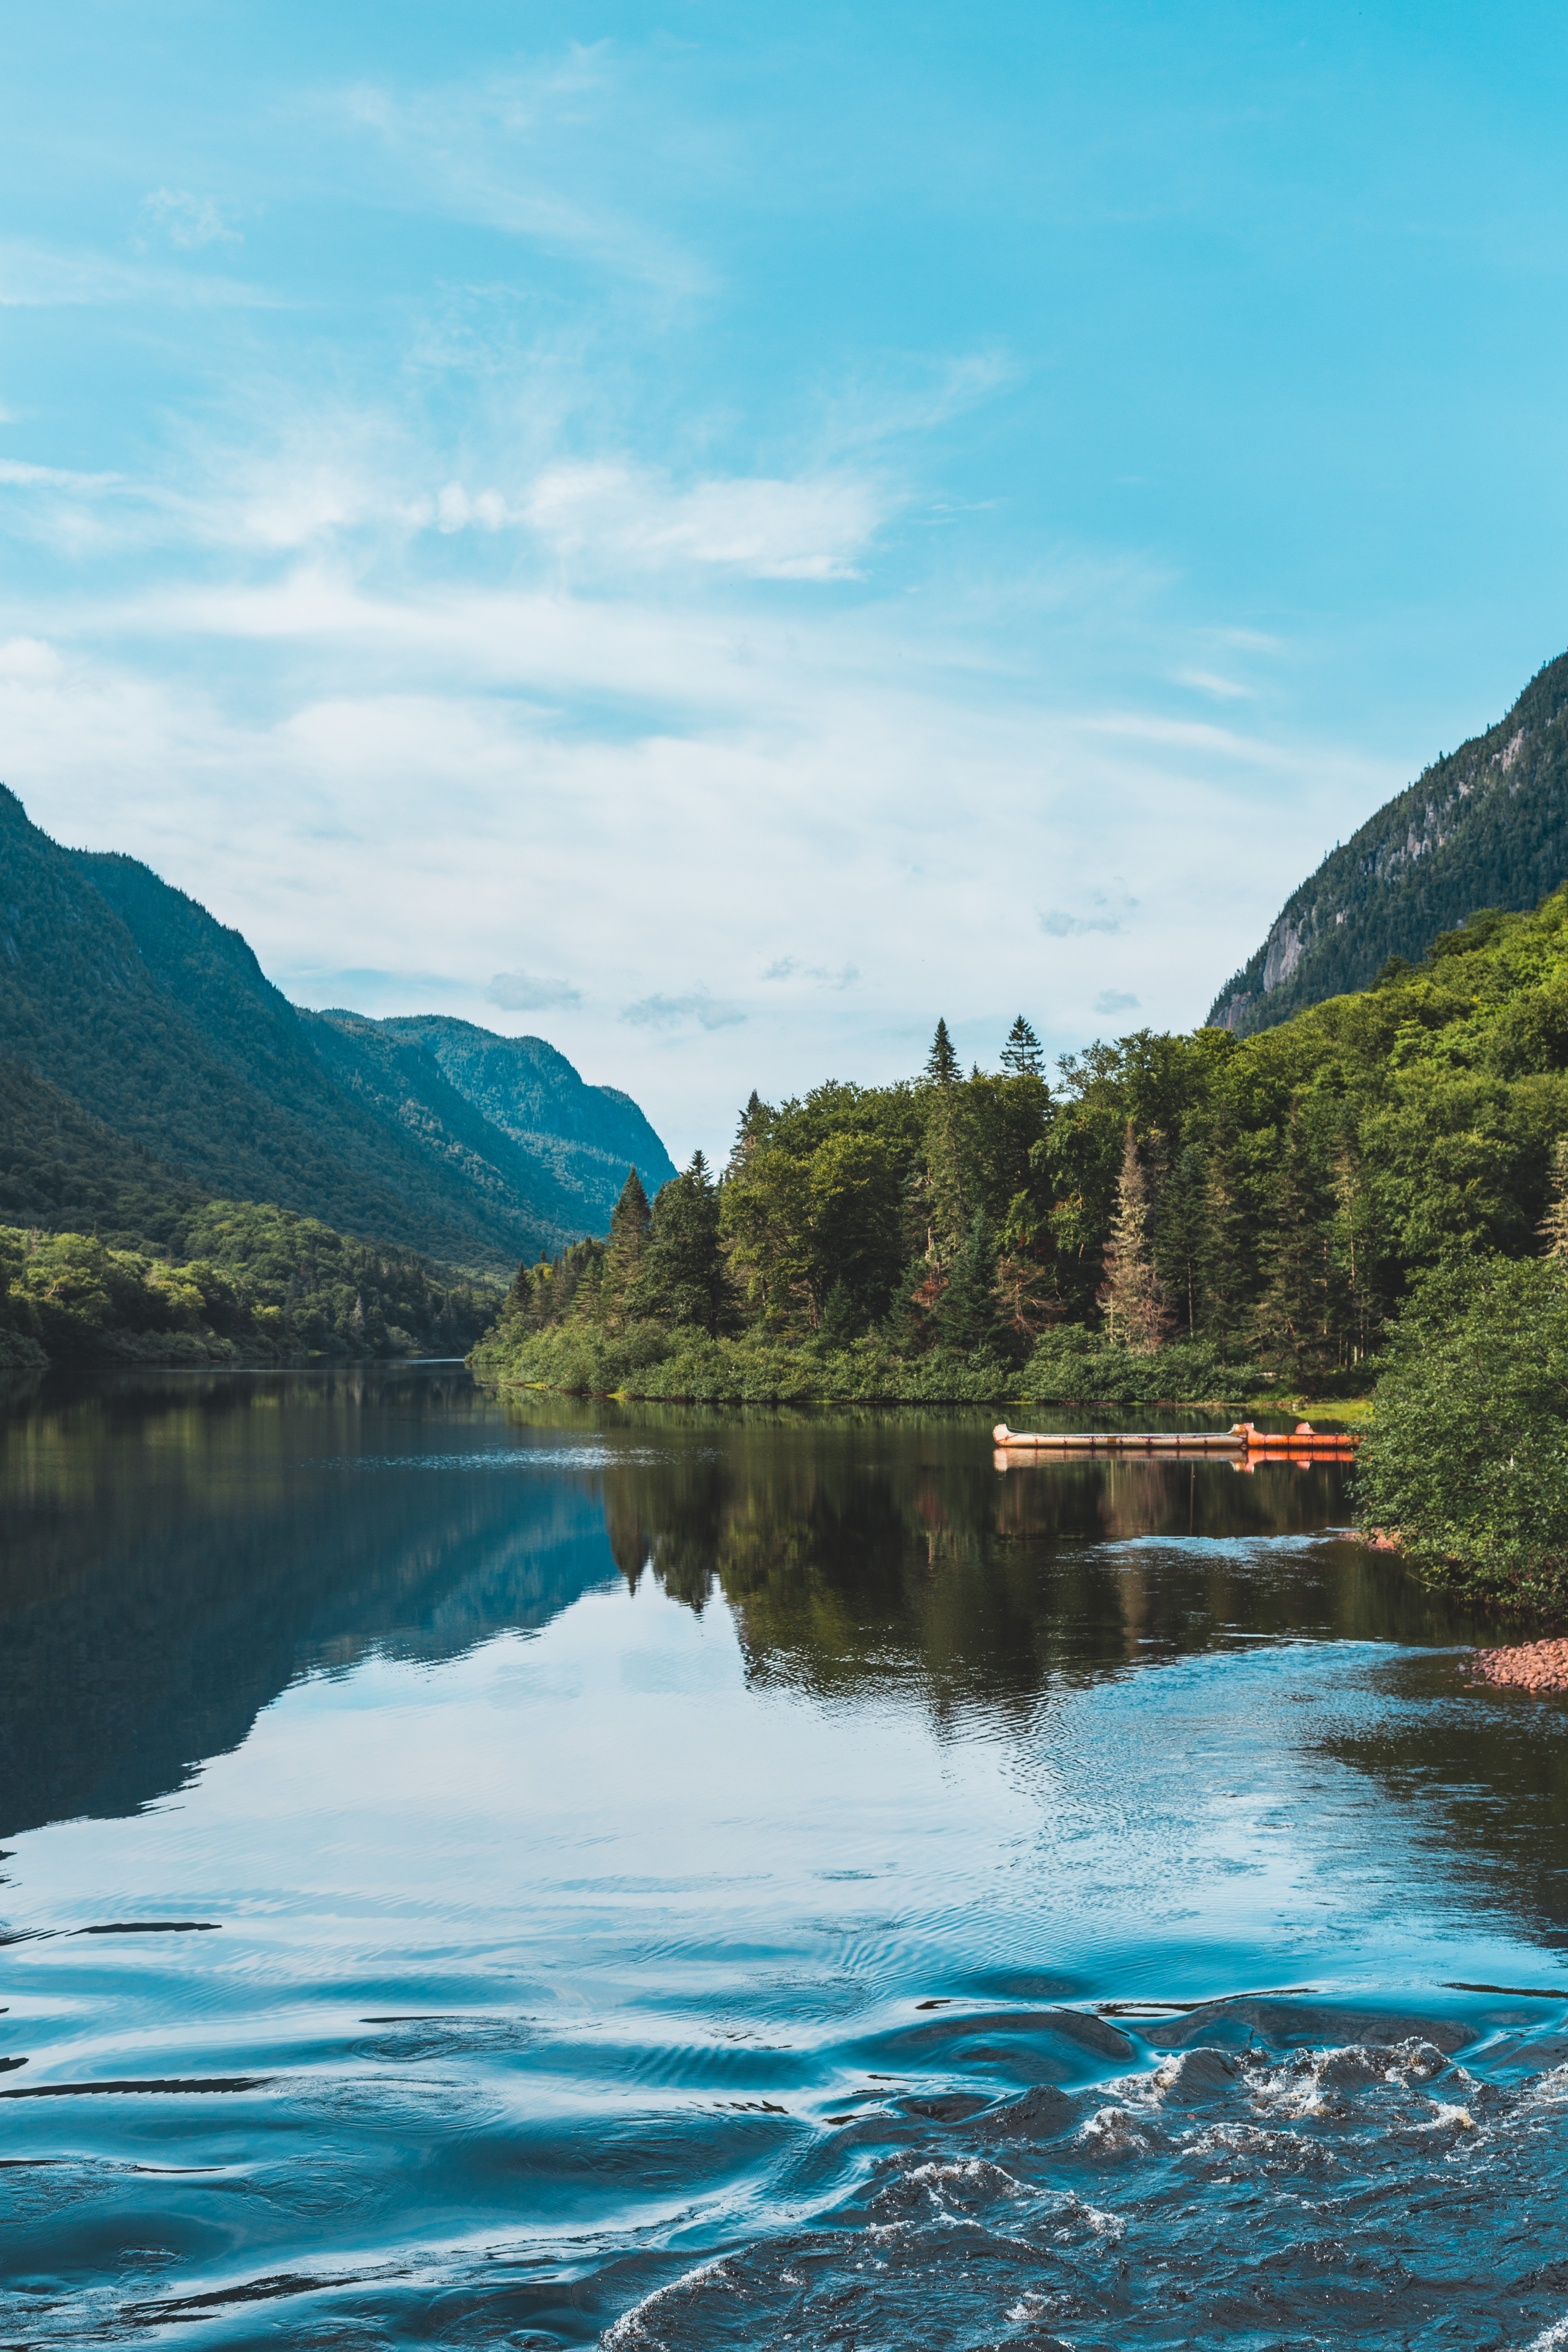 127168 download wallpaper Forest, Nature, Landscape, Trees, Mountains, Lake, Shore, Bank screensavers and pictures for free